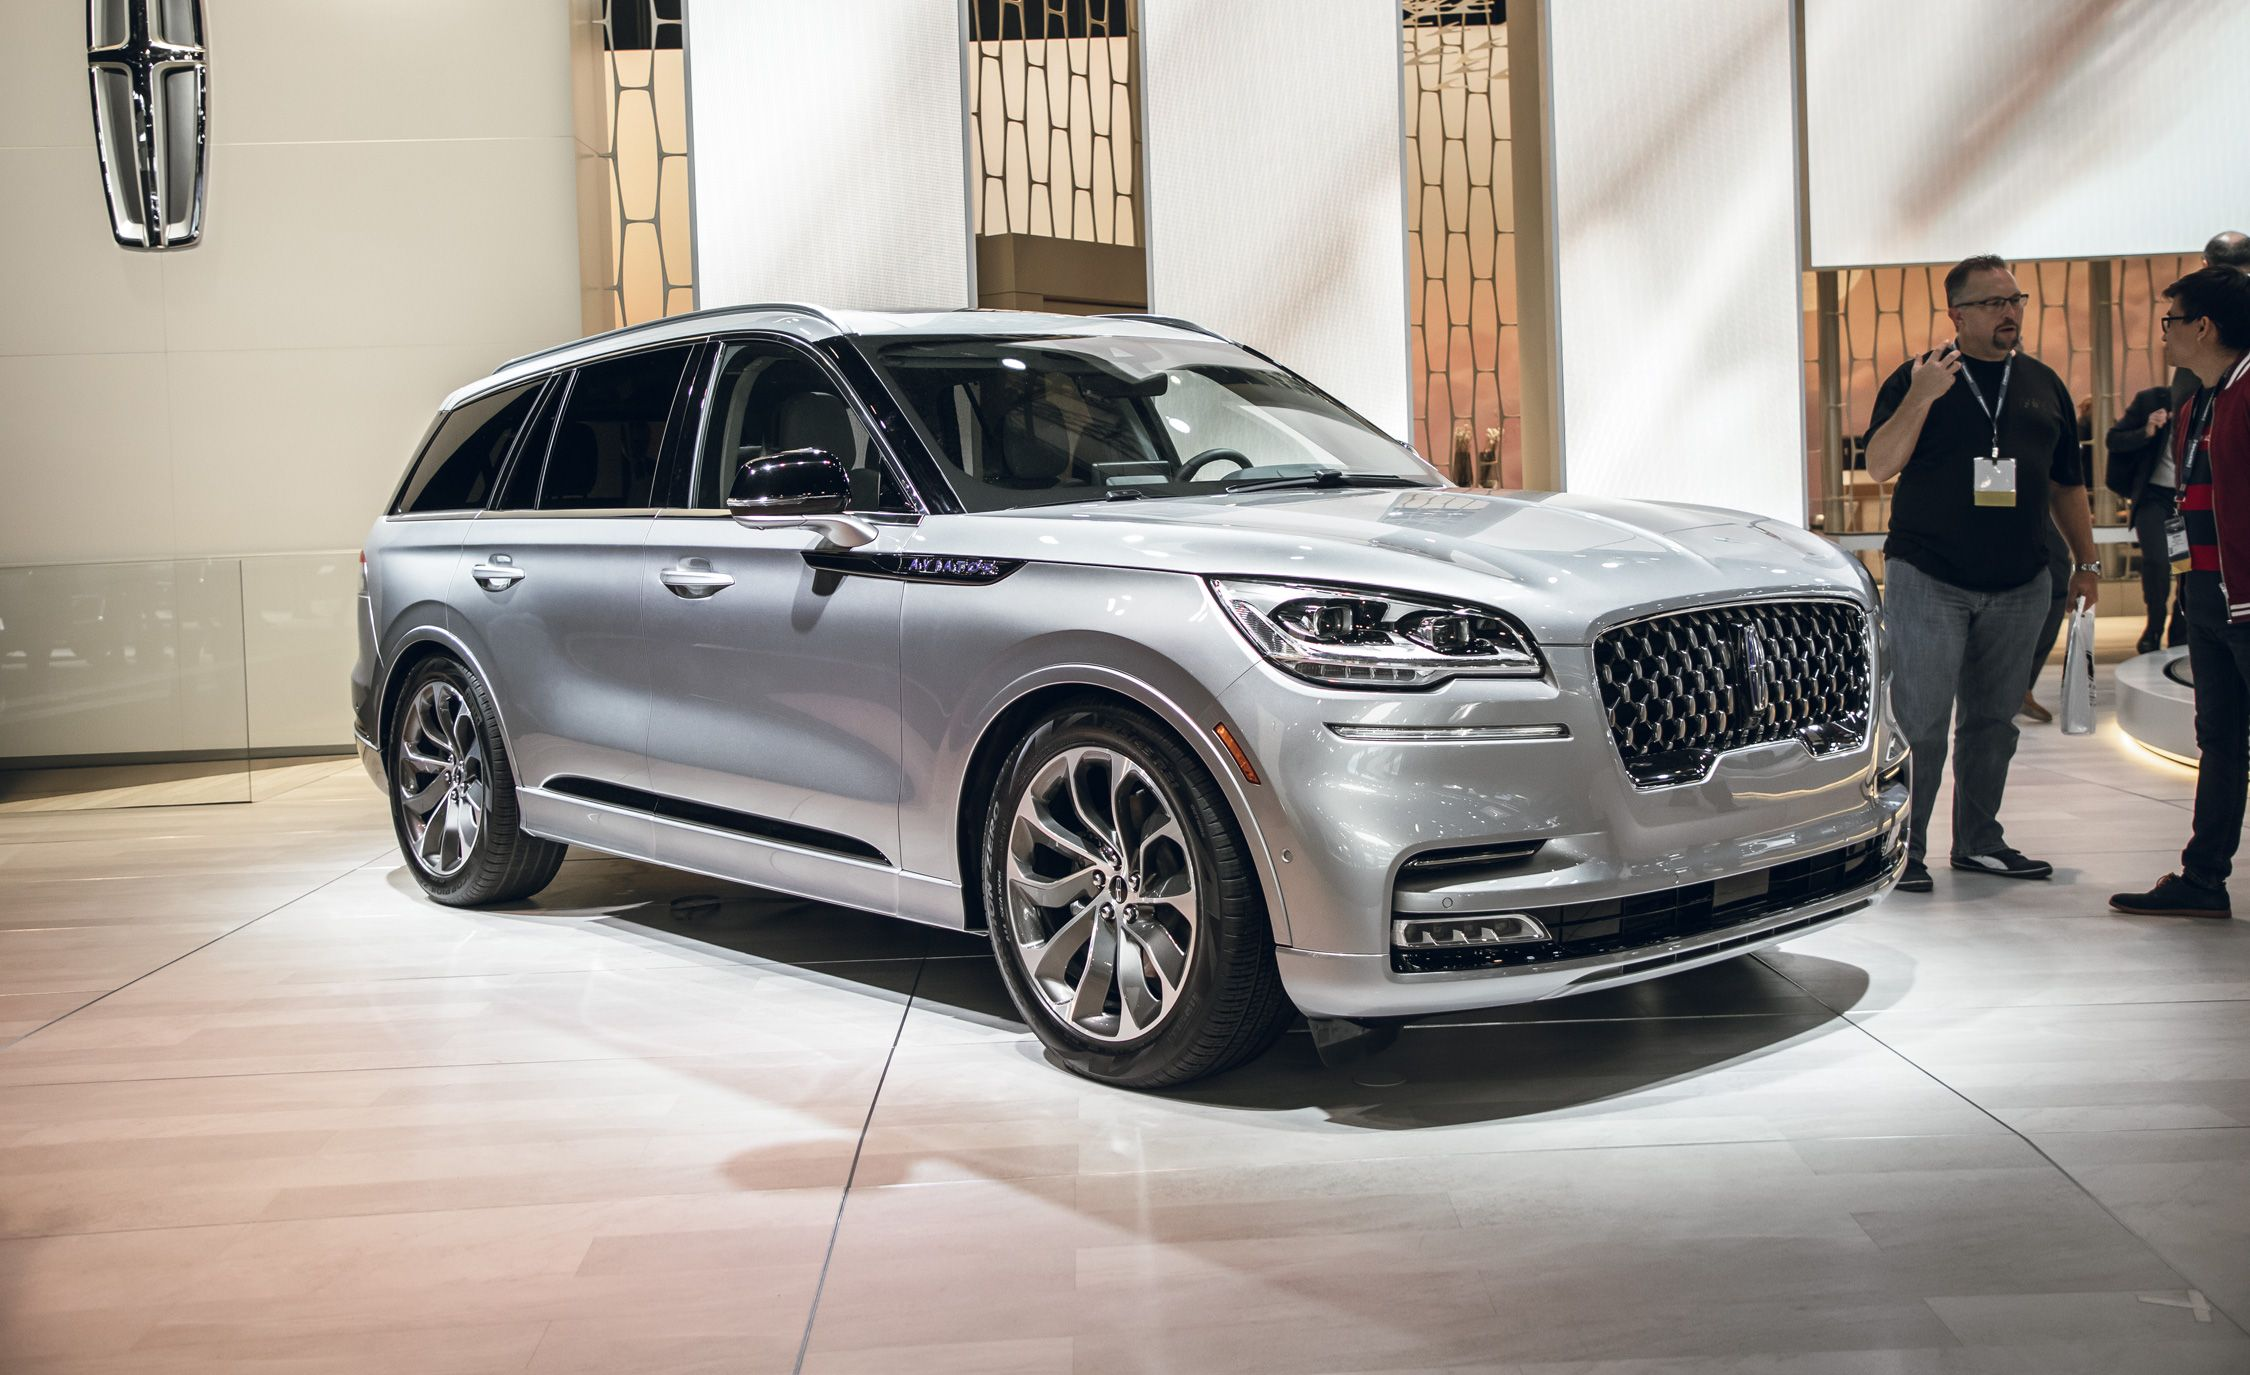 The 2020 Lincoln Aviator – New Mid-Size Luxury SUV